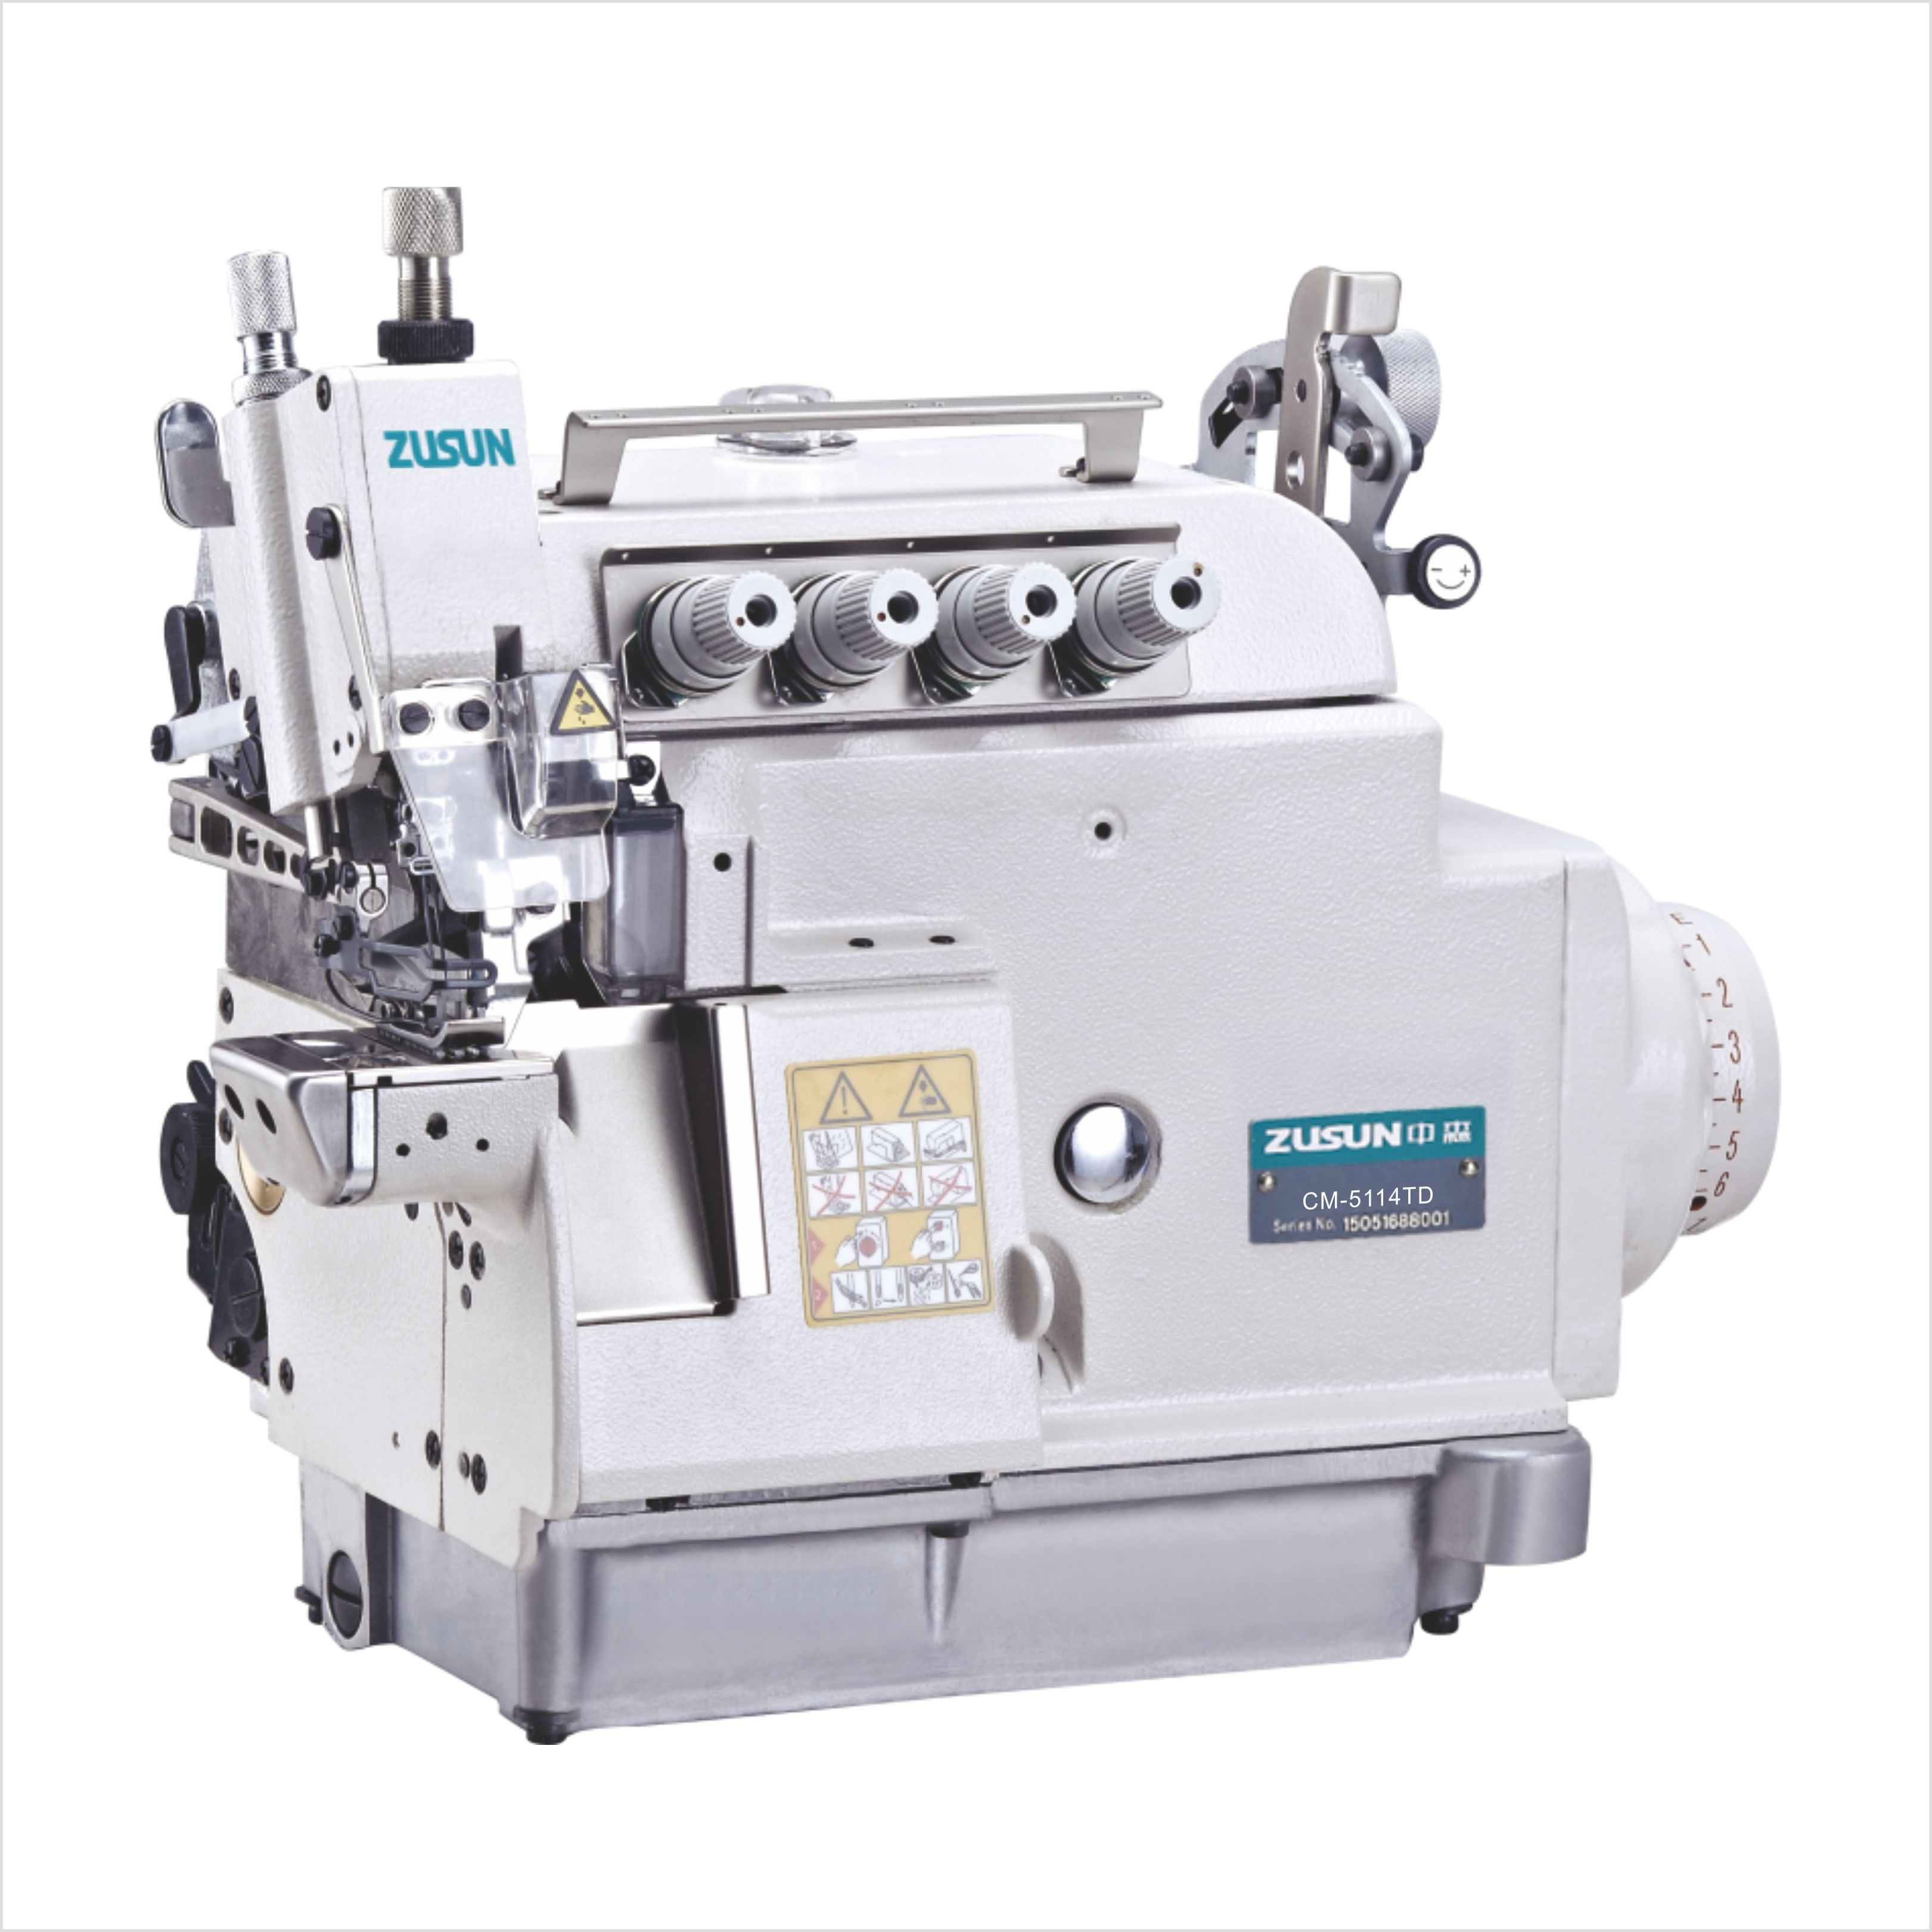 Direct drive small cylinder bed overlock machine with variable top feed